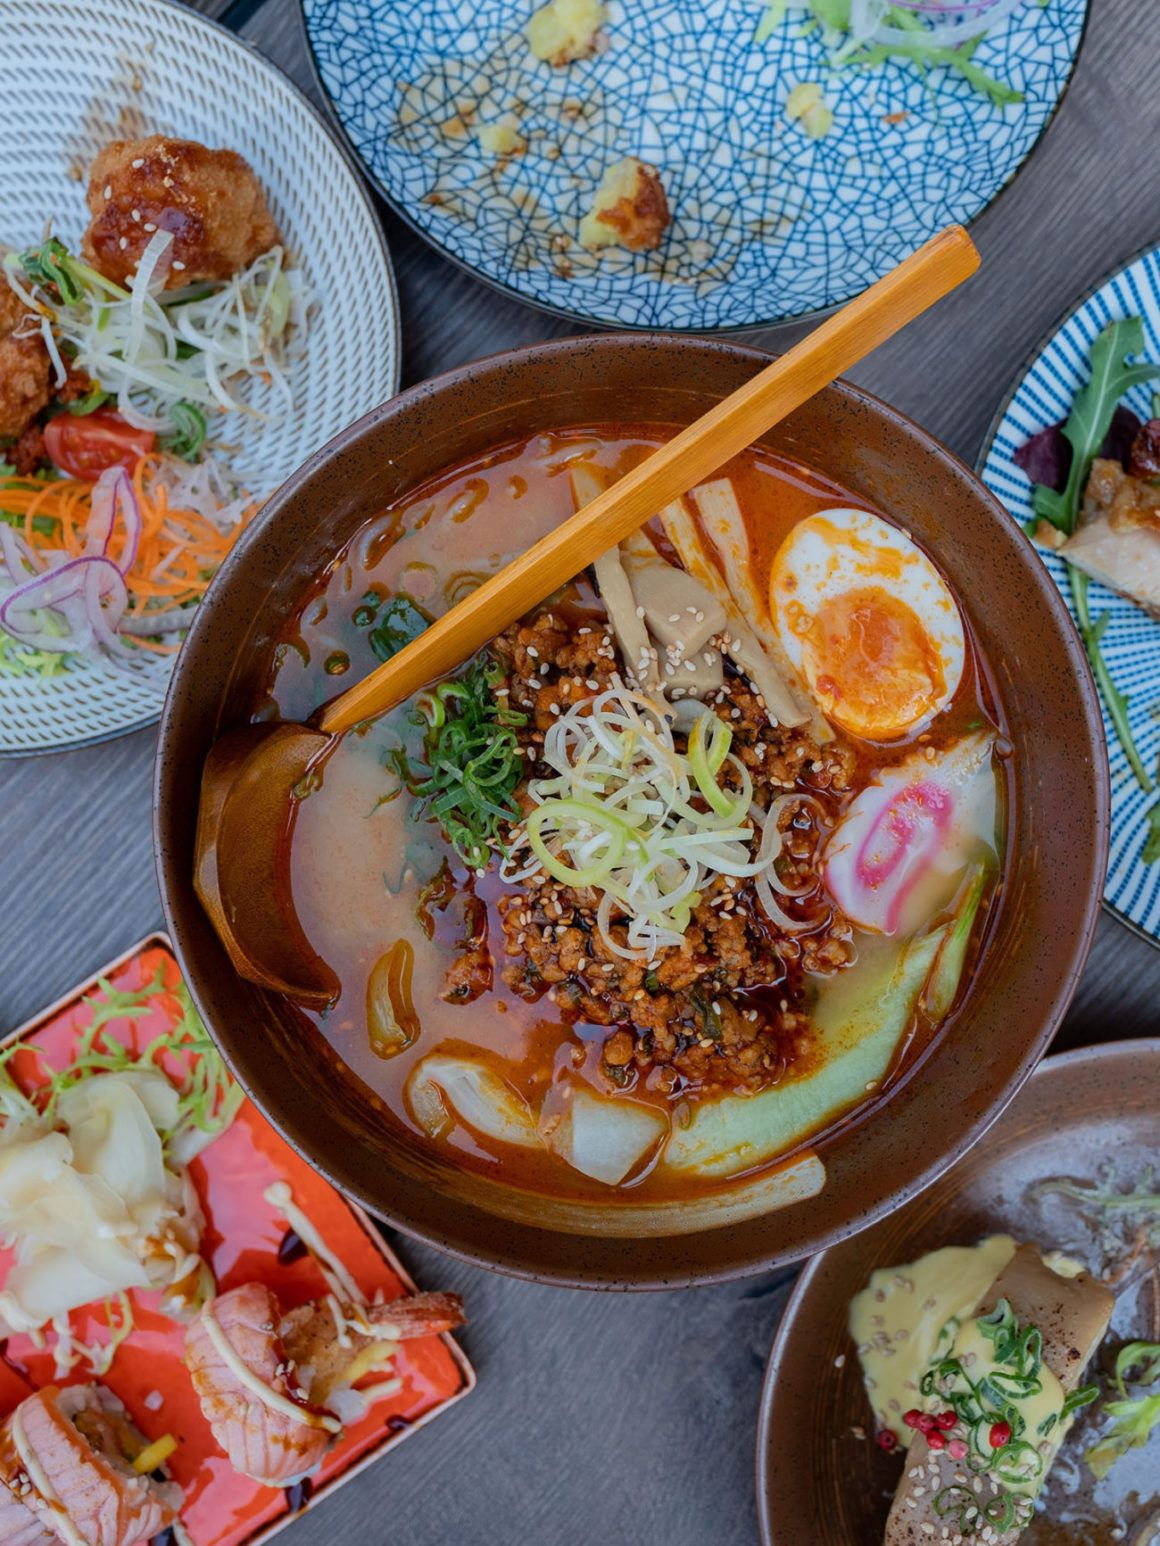 Foodblog About Fuel, Restaurant CHOTTO Berlin, Ramen